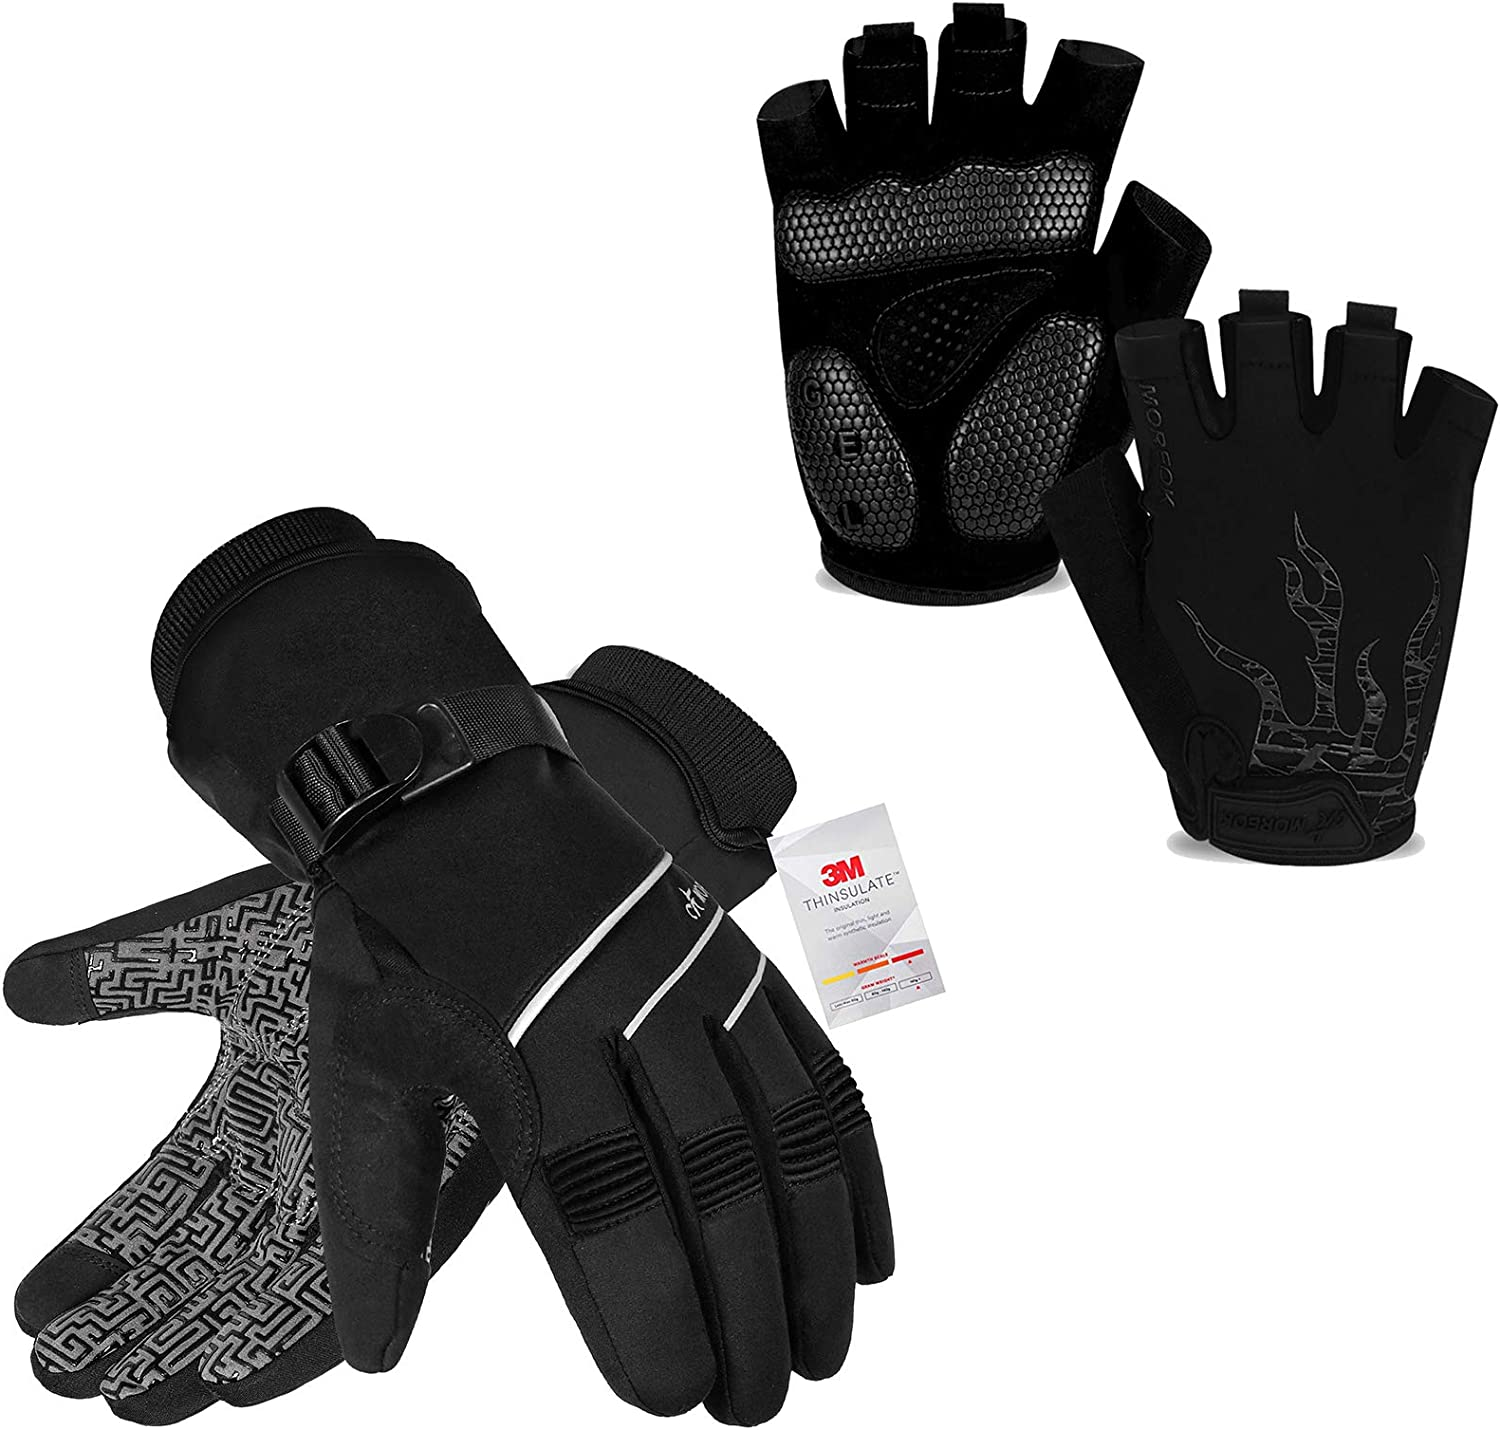 MOREOK Year-end annual account Mens Cycling Gloves Biking Glove Over item handling ☆ Glov Road Bicycle MTB DH